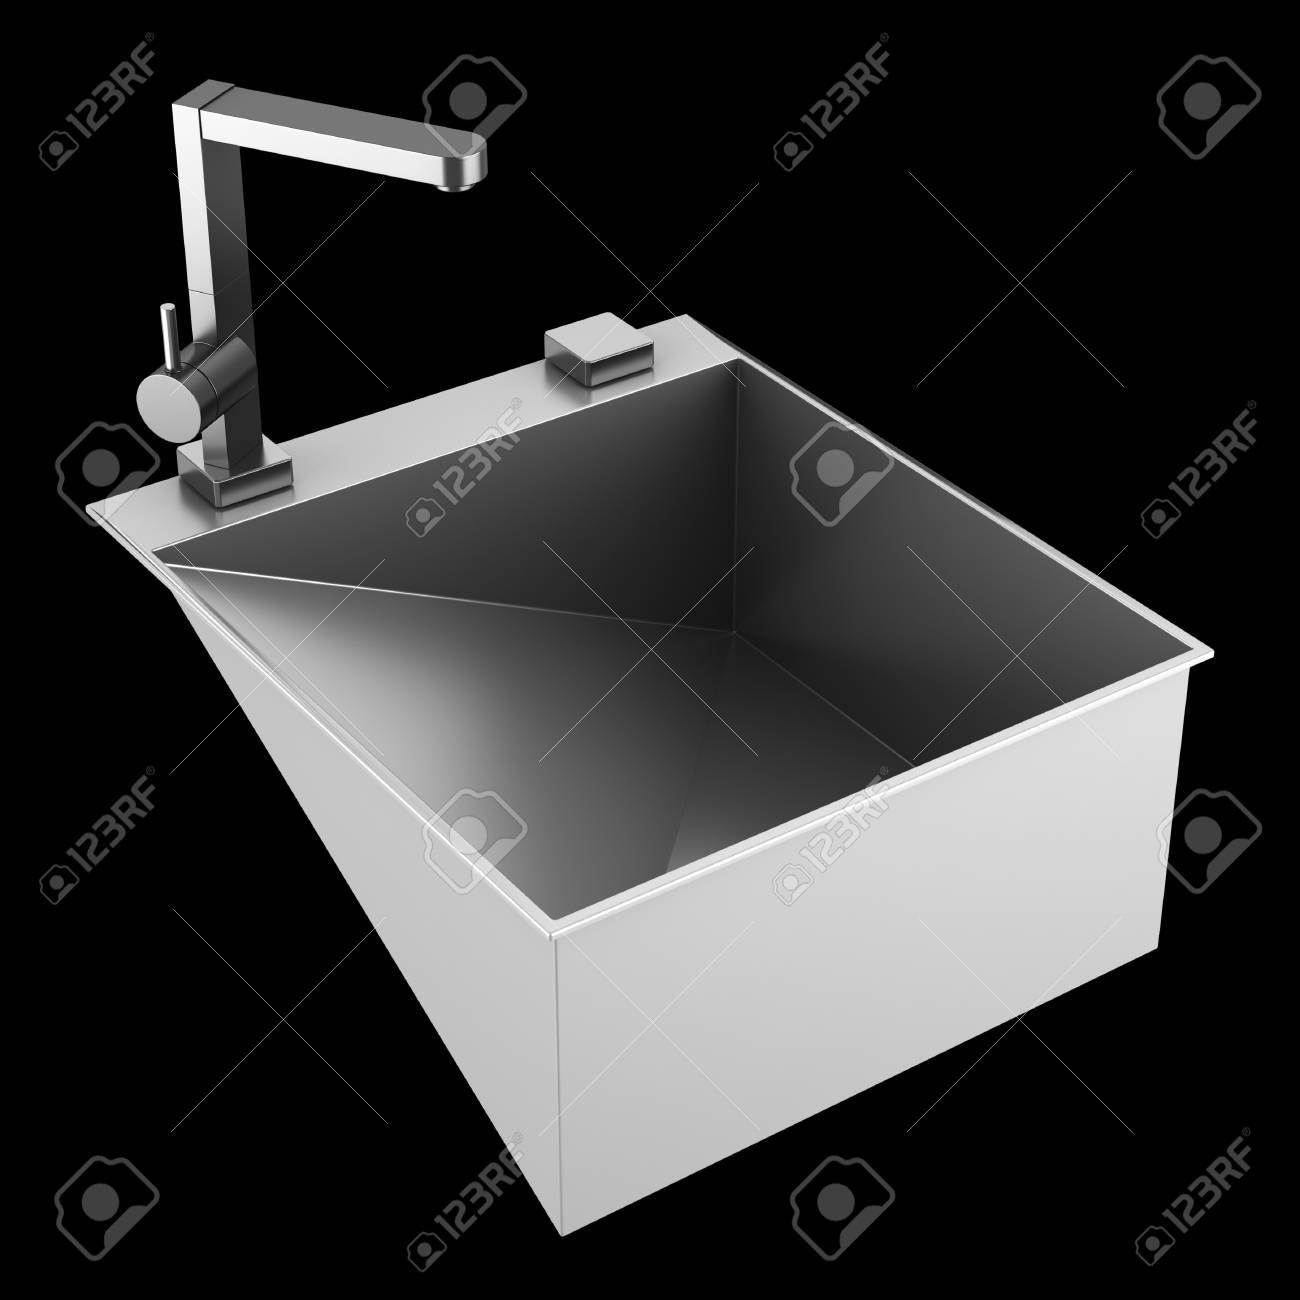 modern metal sink isolated on black background Stock Photo - 21060305